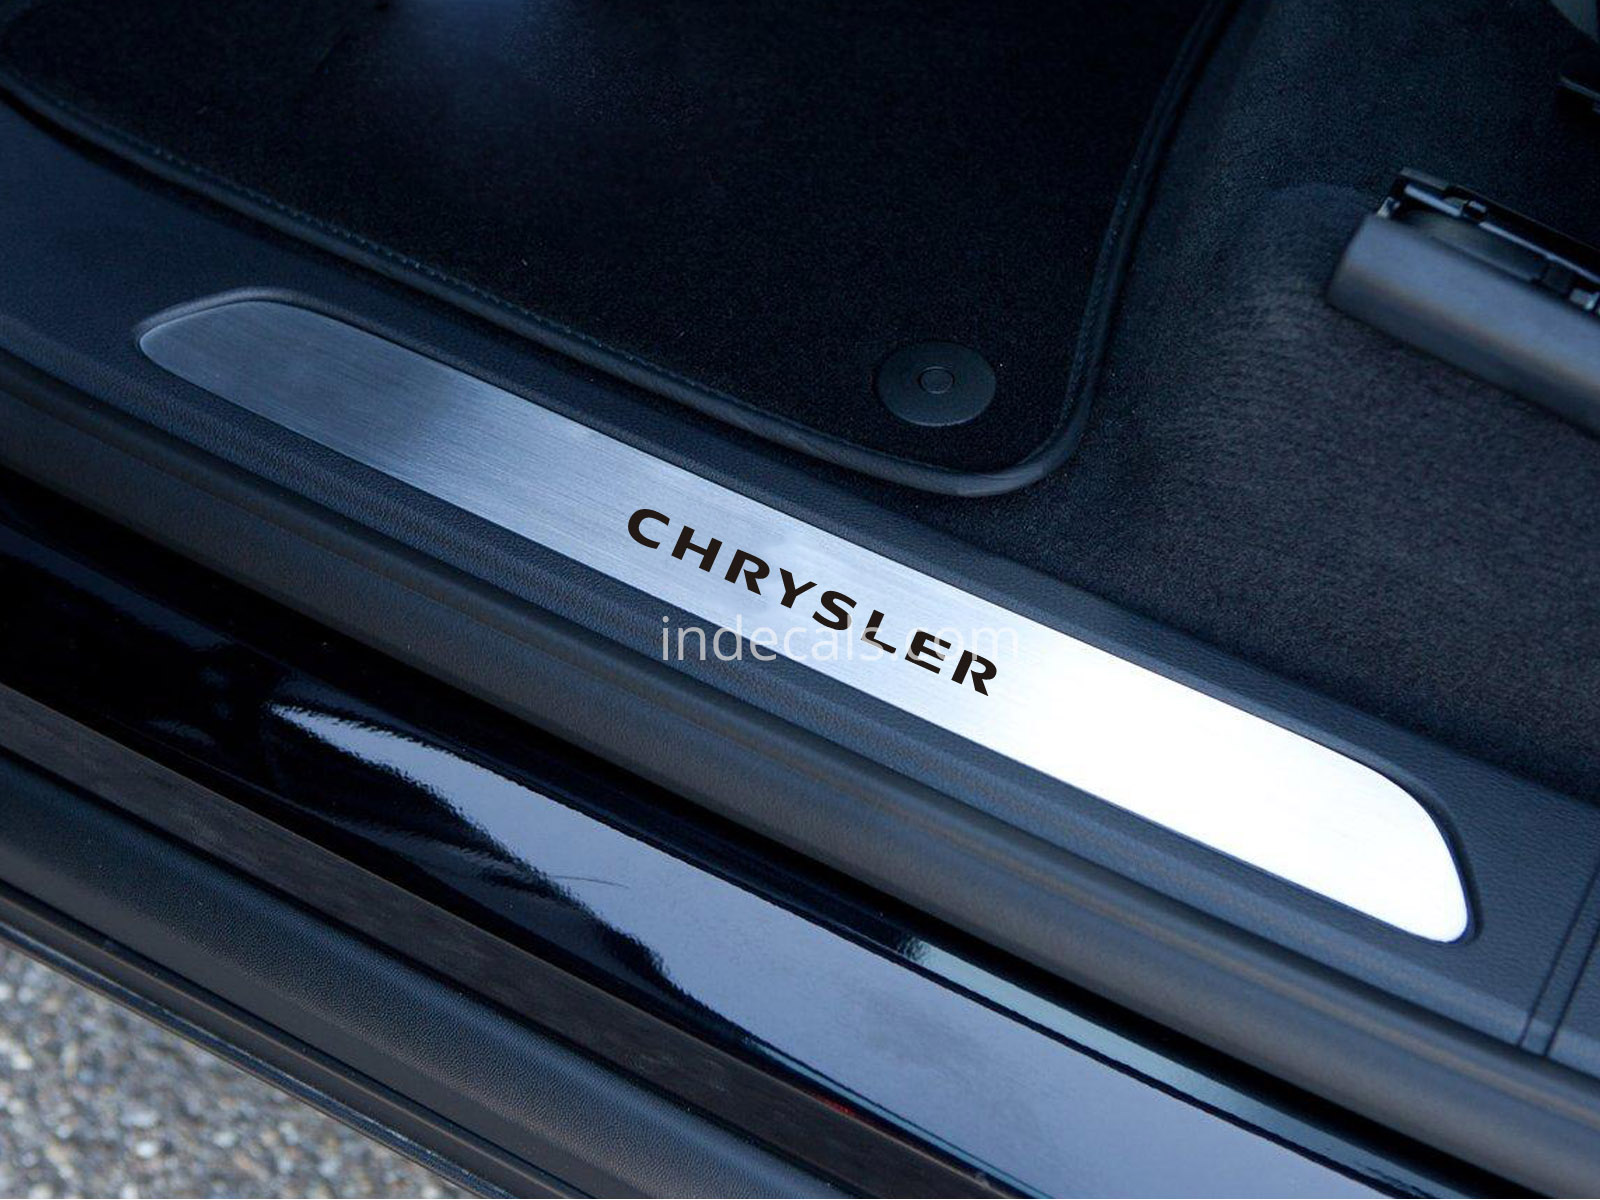 6 x Chrysler Stickers for Door Sills - Black